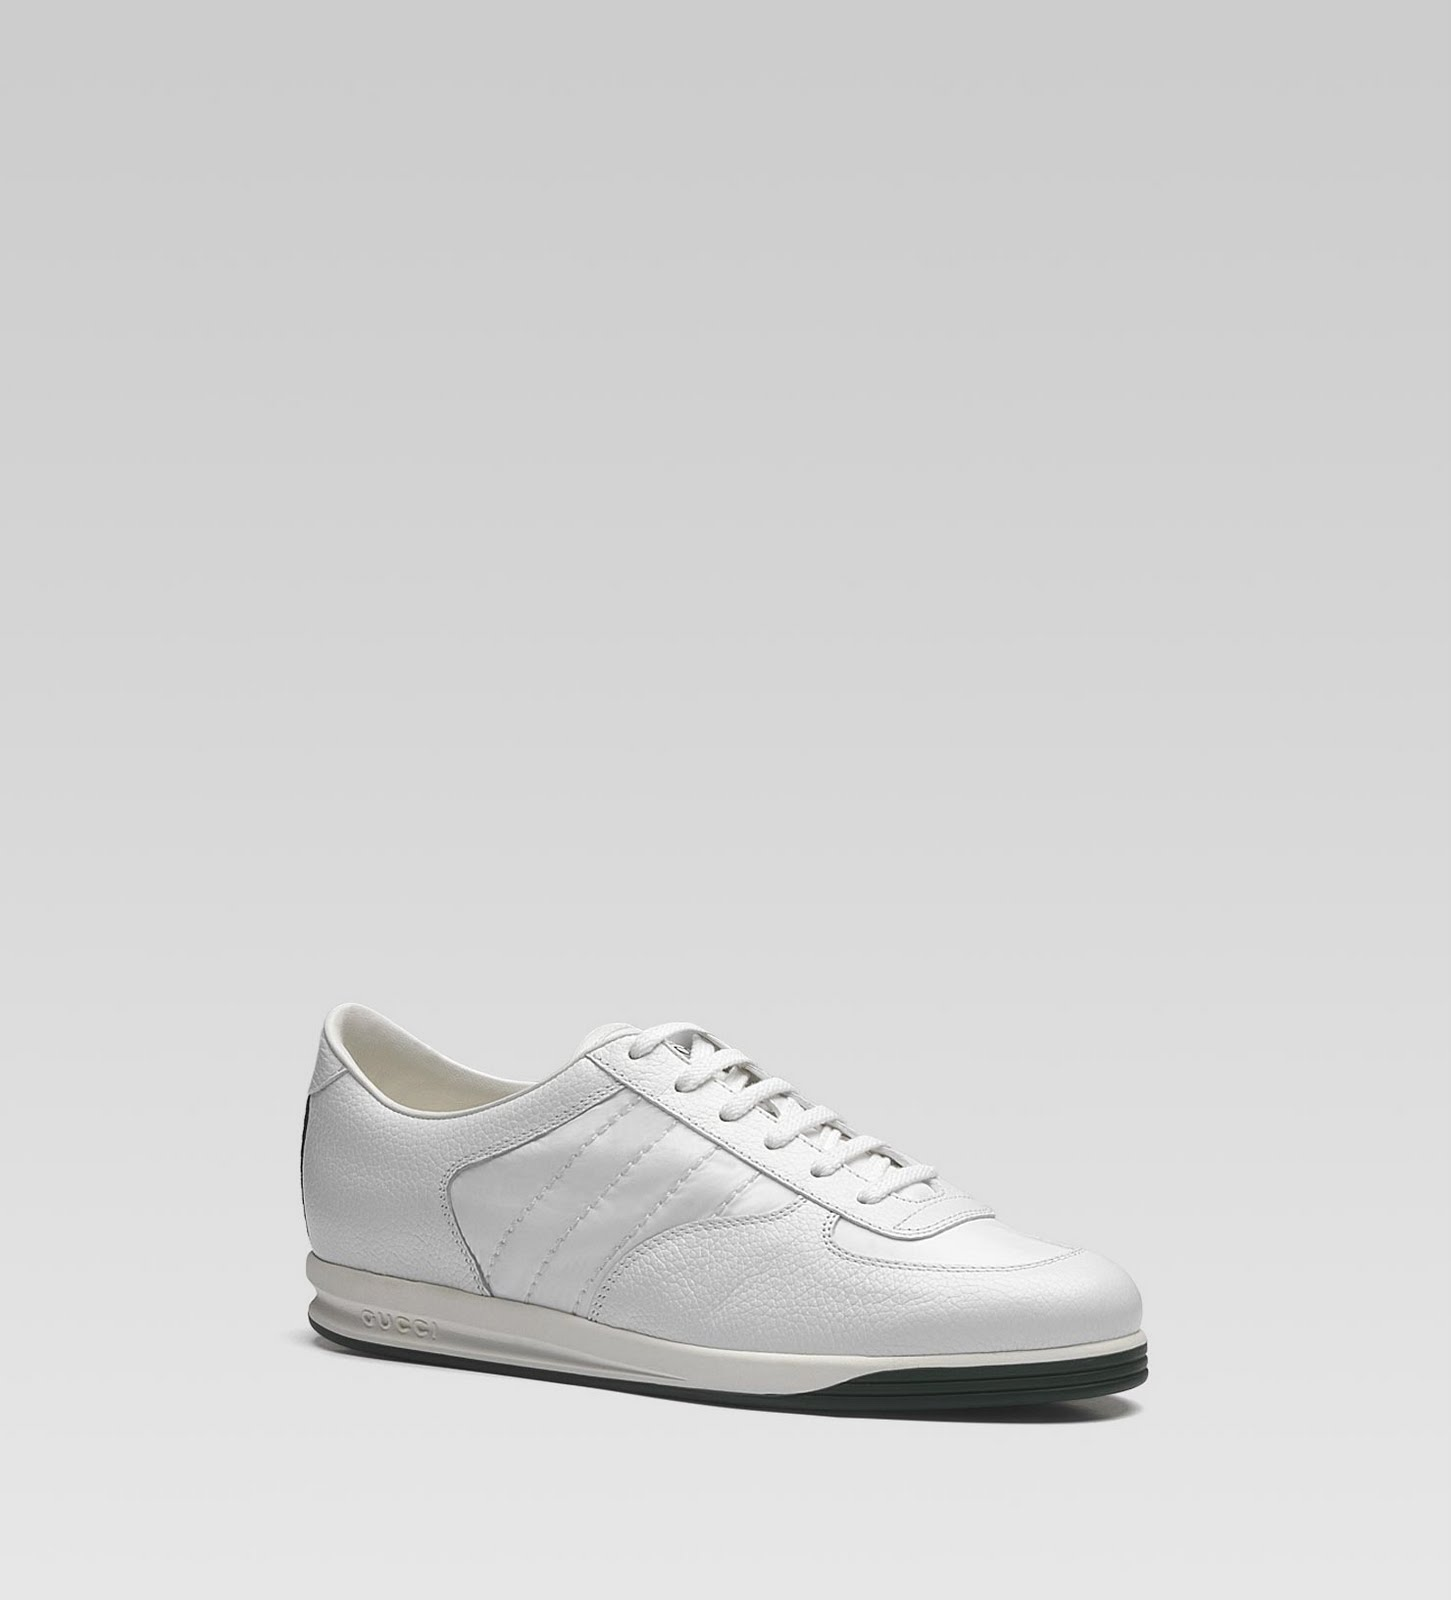 classic 1987 gucci lace up sneakers available now   375 http gucci com c7c5402e0680